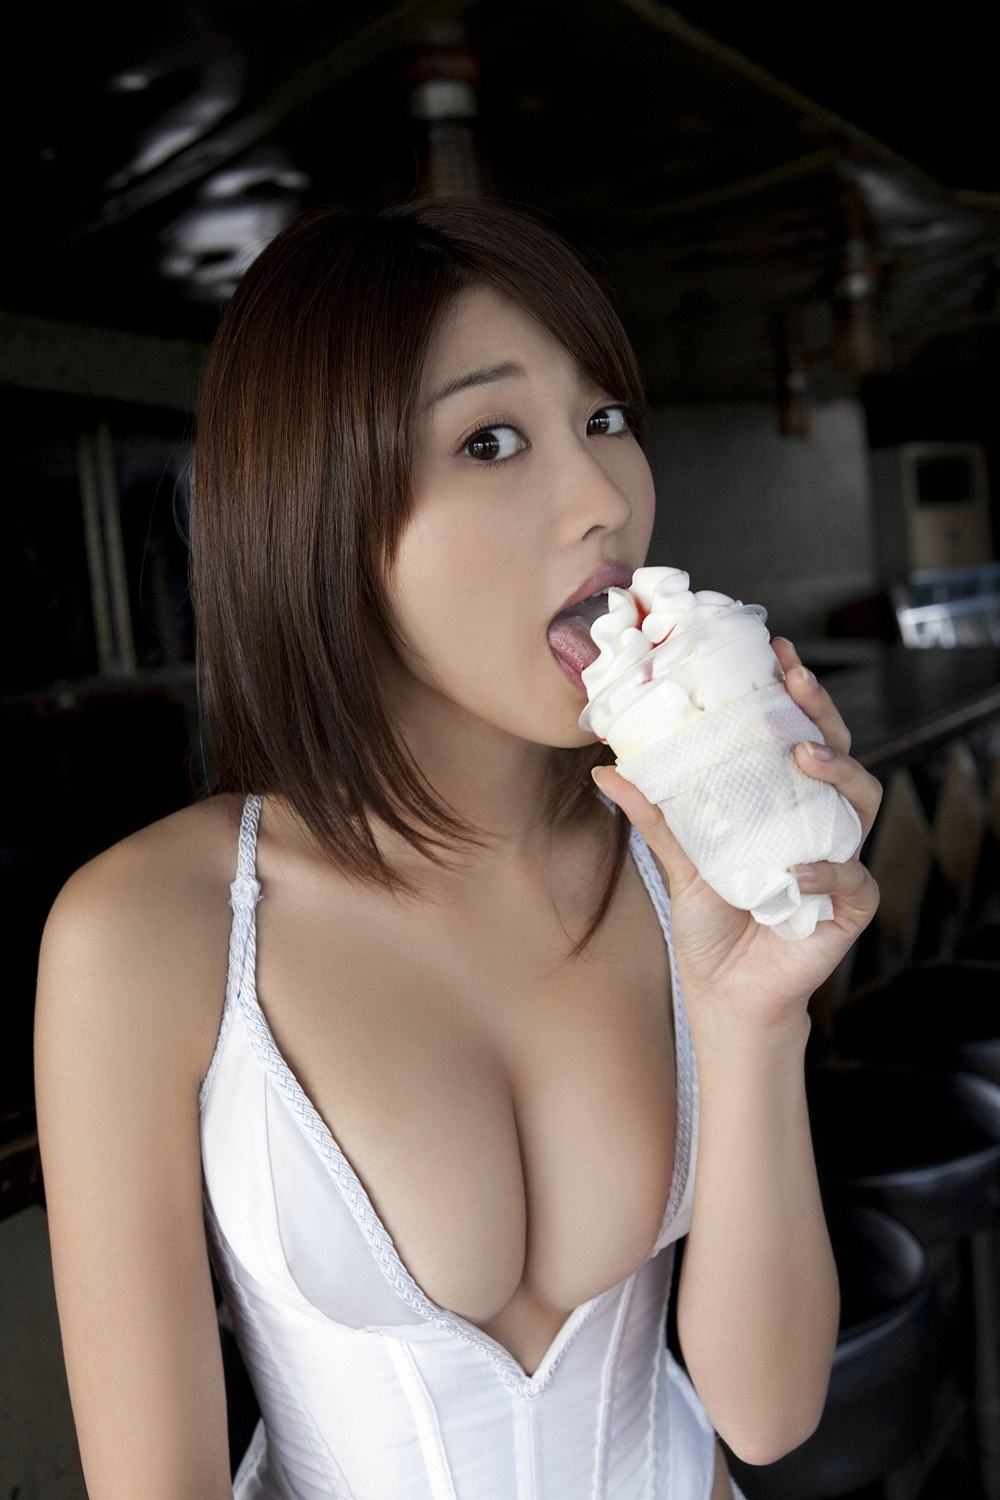 ice cream cleavage asians HD Wallpaper